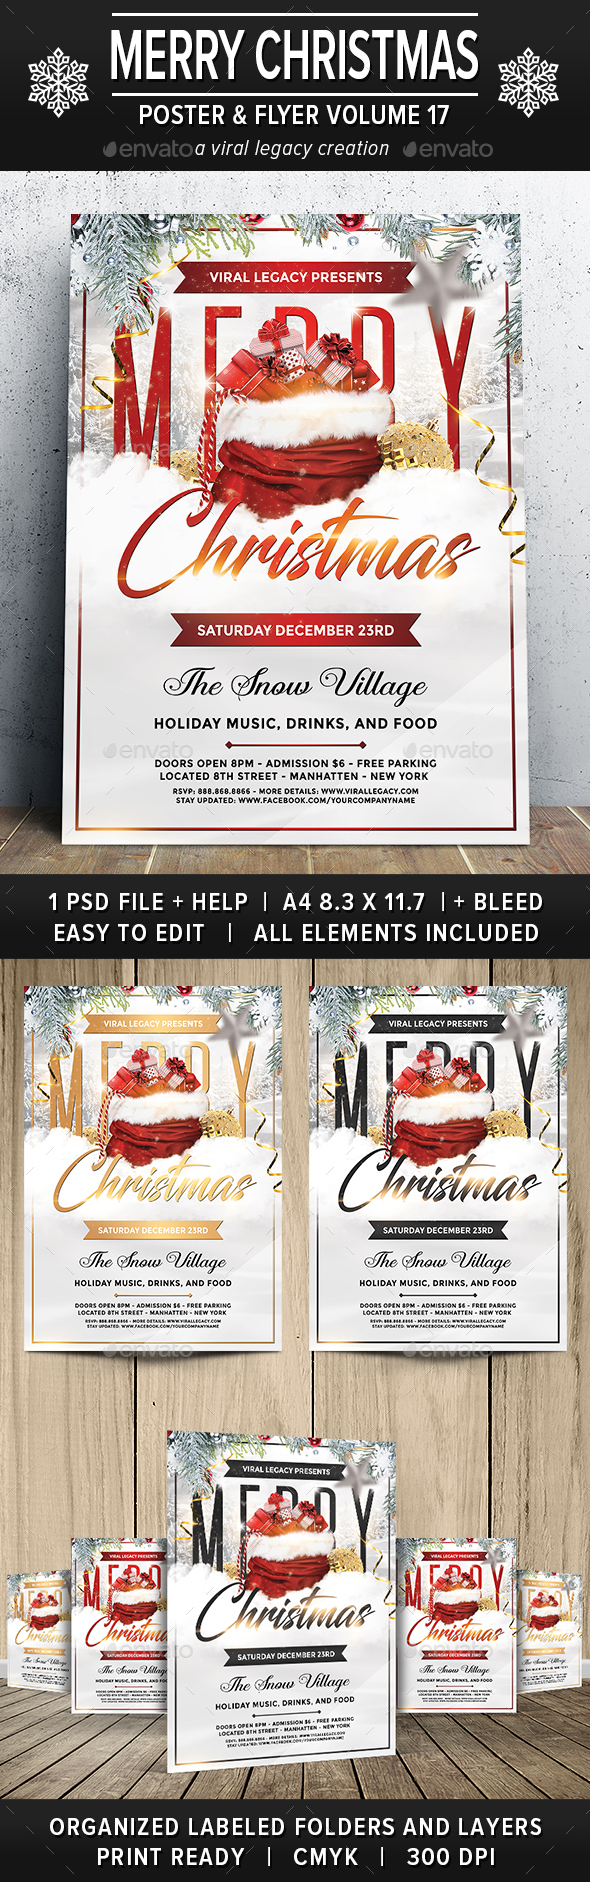 Merry Christmas Poster / Flyer V17 - Flyers Print Templates